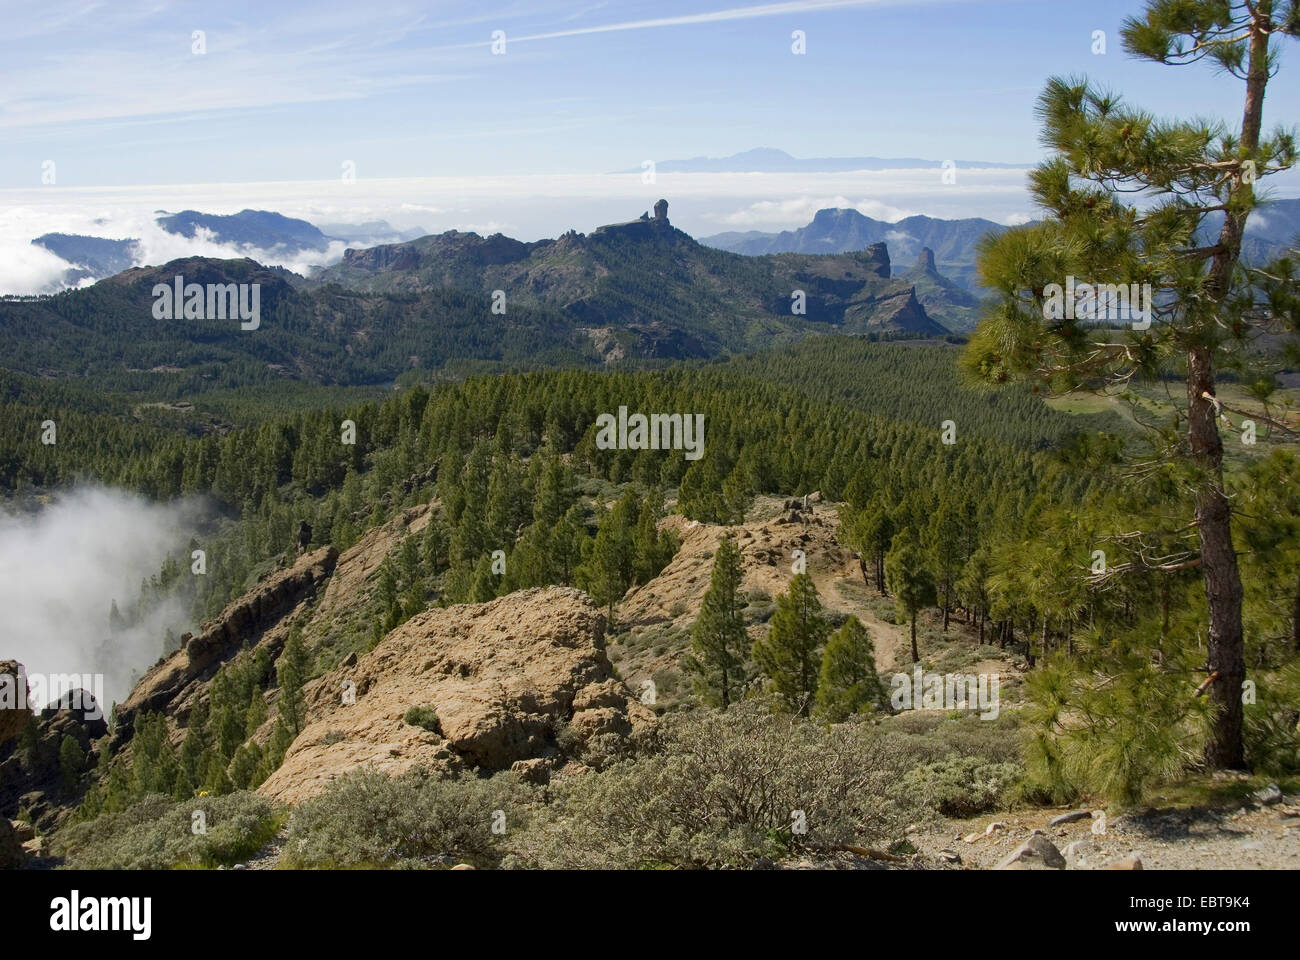 view from the Pico de las Nieves to the Roque Nublo und to Teneriffa, Canary Islands, Gran Canaria Stock Photo